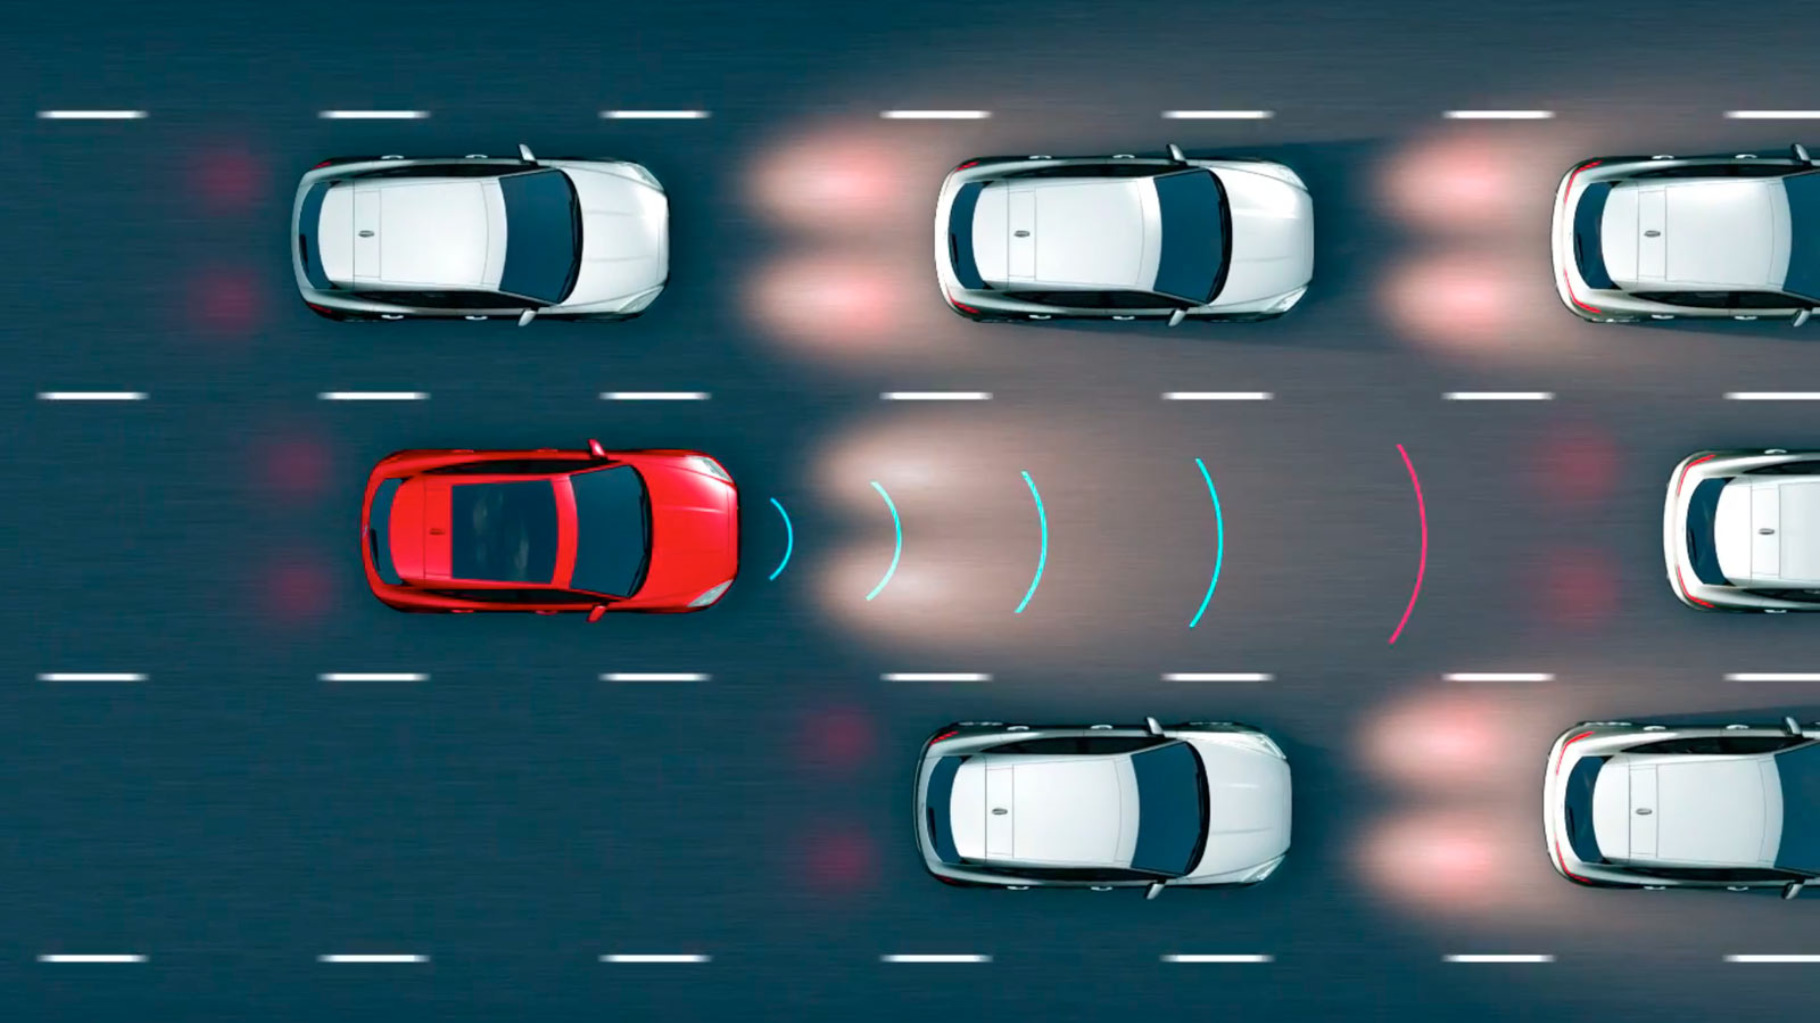 A diagram of the Jaguar E-Pace Adaptive Cruise Control mainting a safe distance from the car in front.